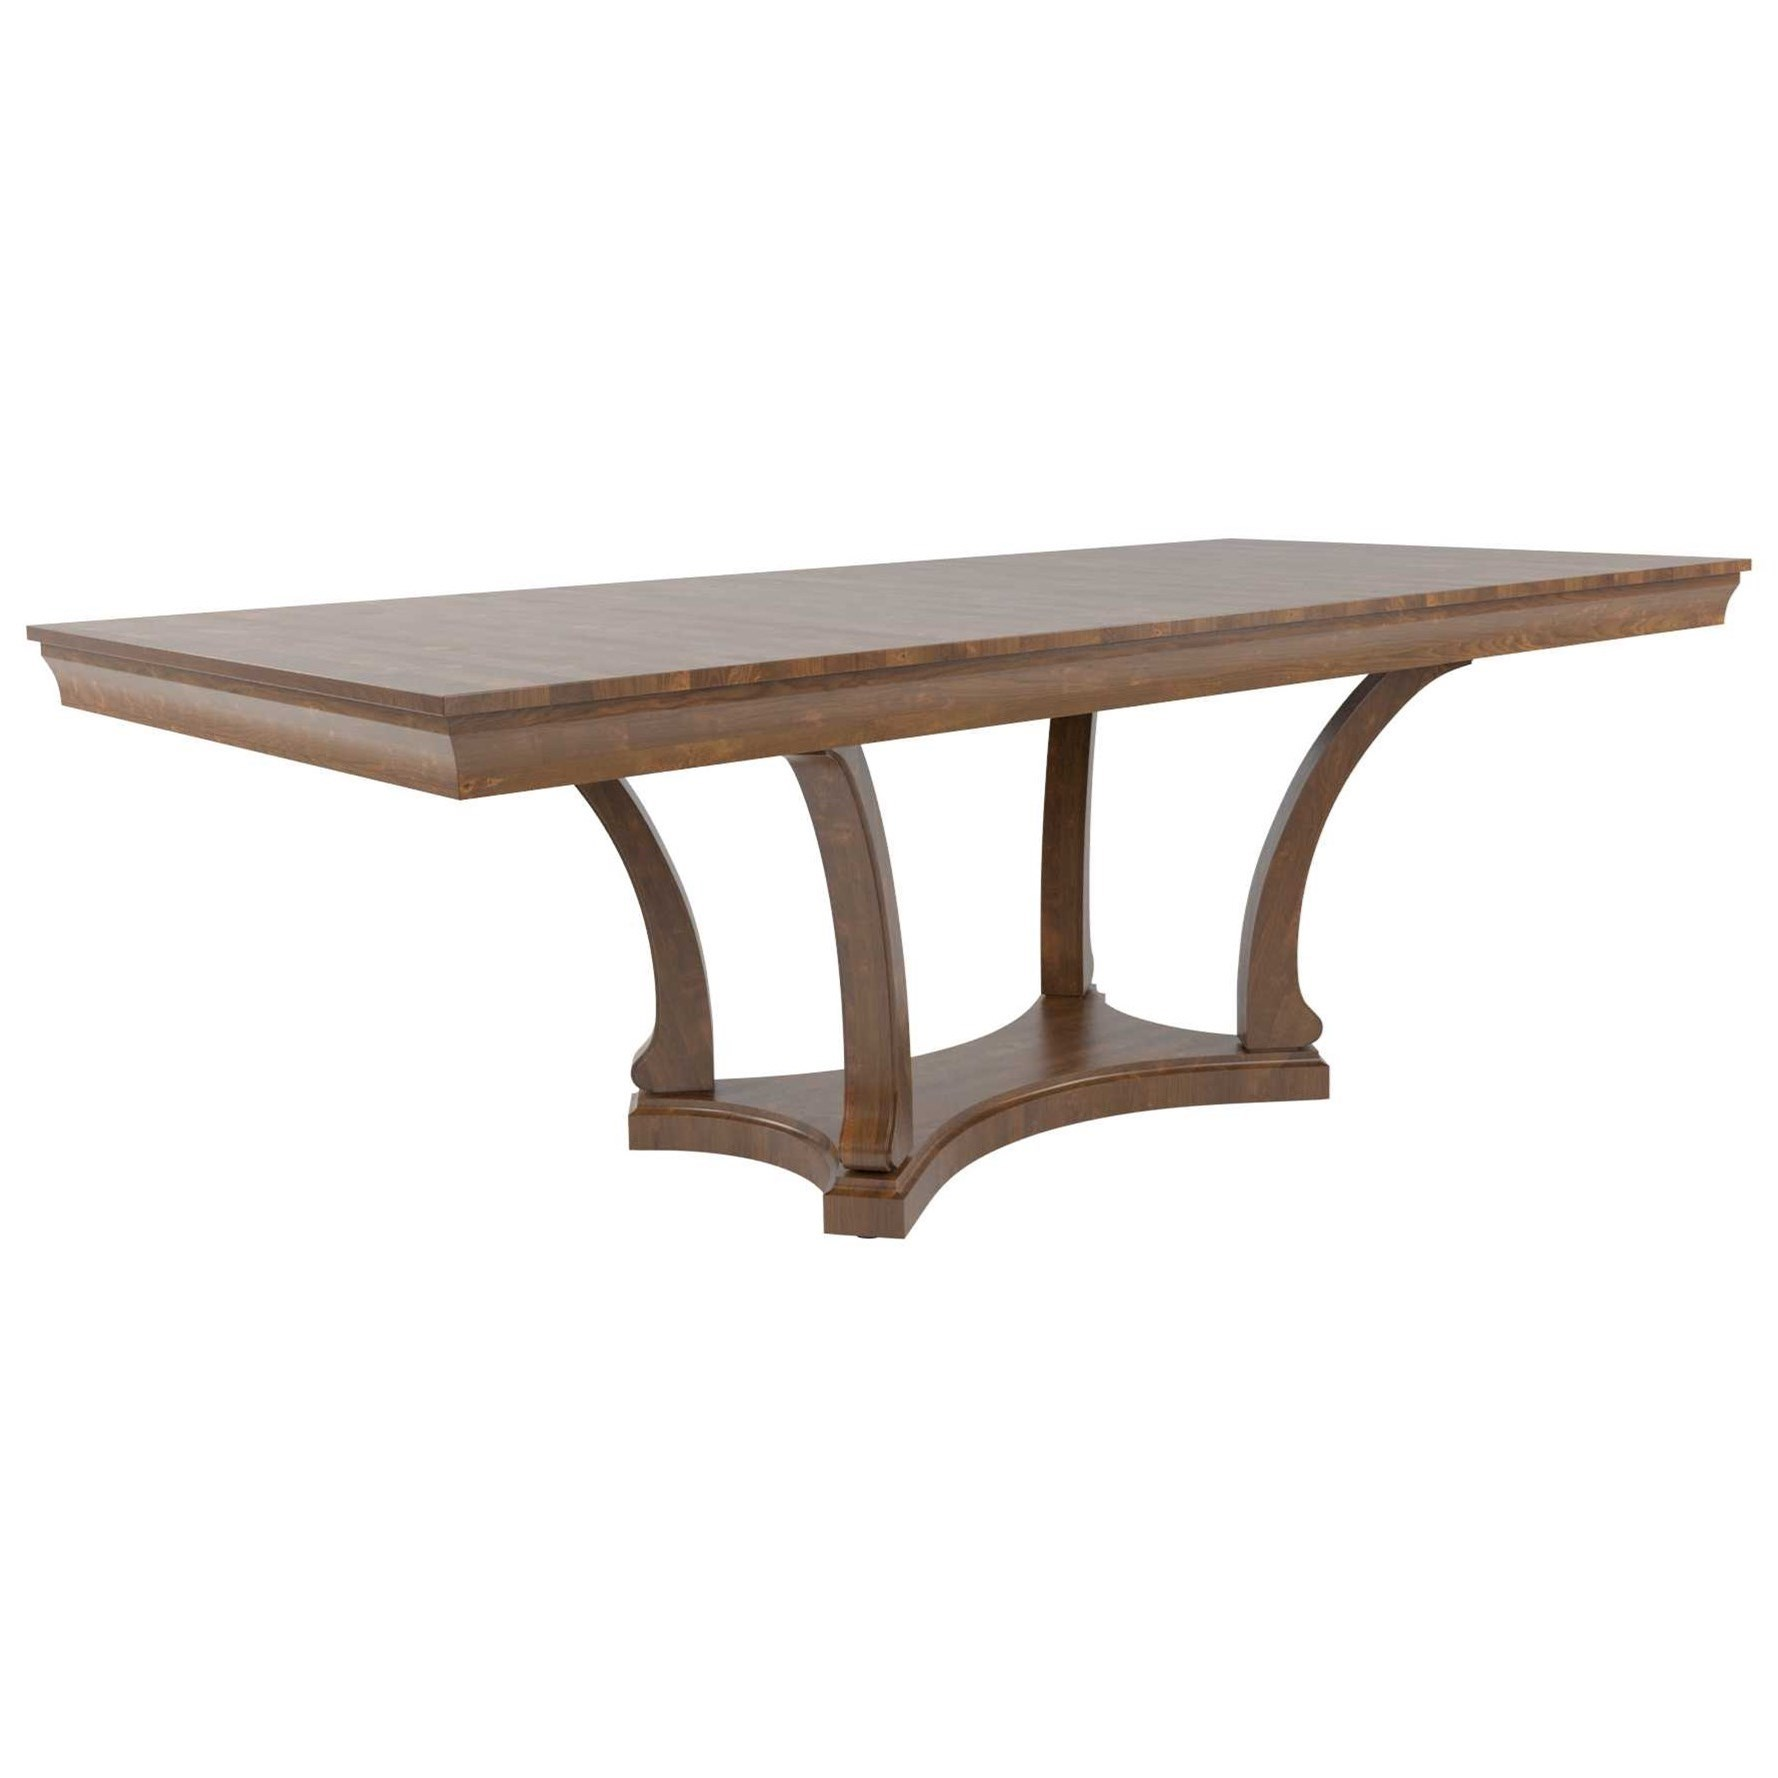 Classic Customizable Rectangular Dining Table by Canadel at Jordan's Home Furnishings